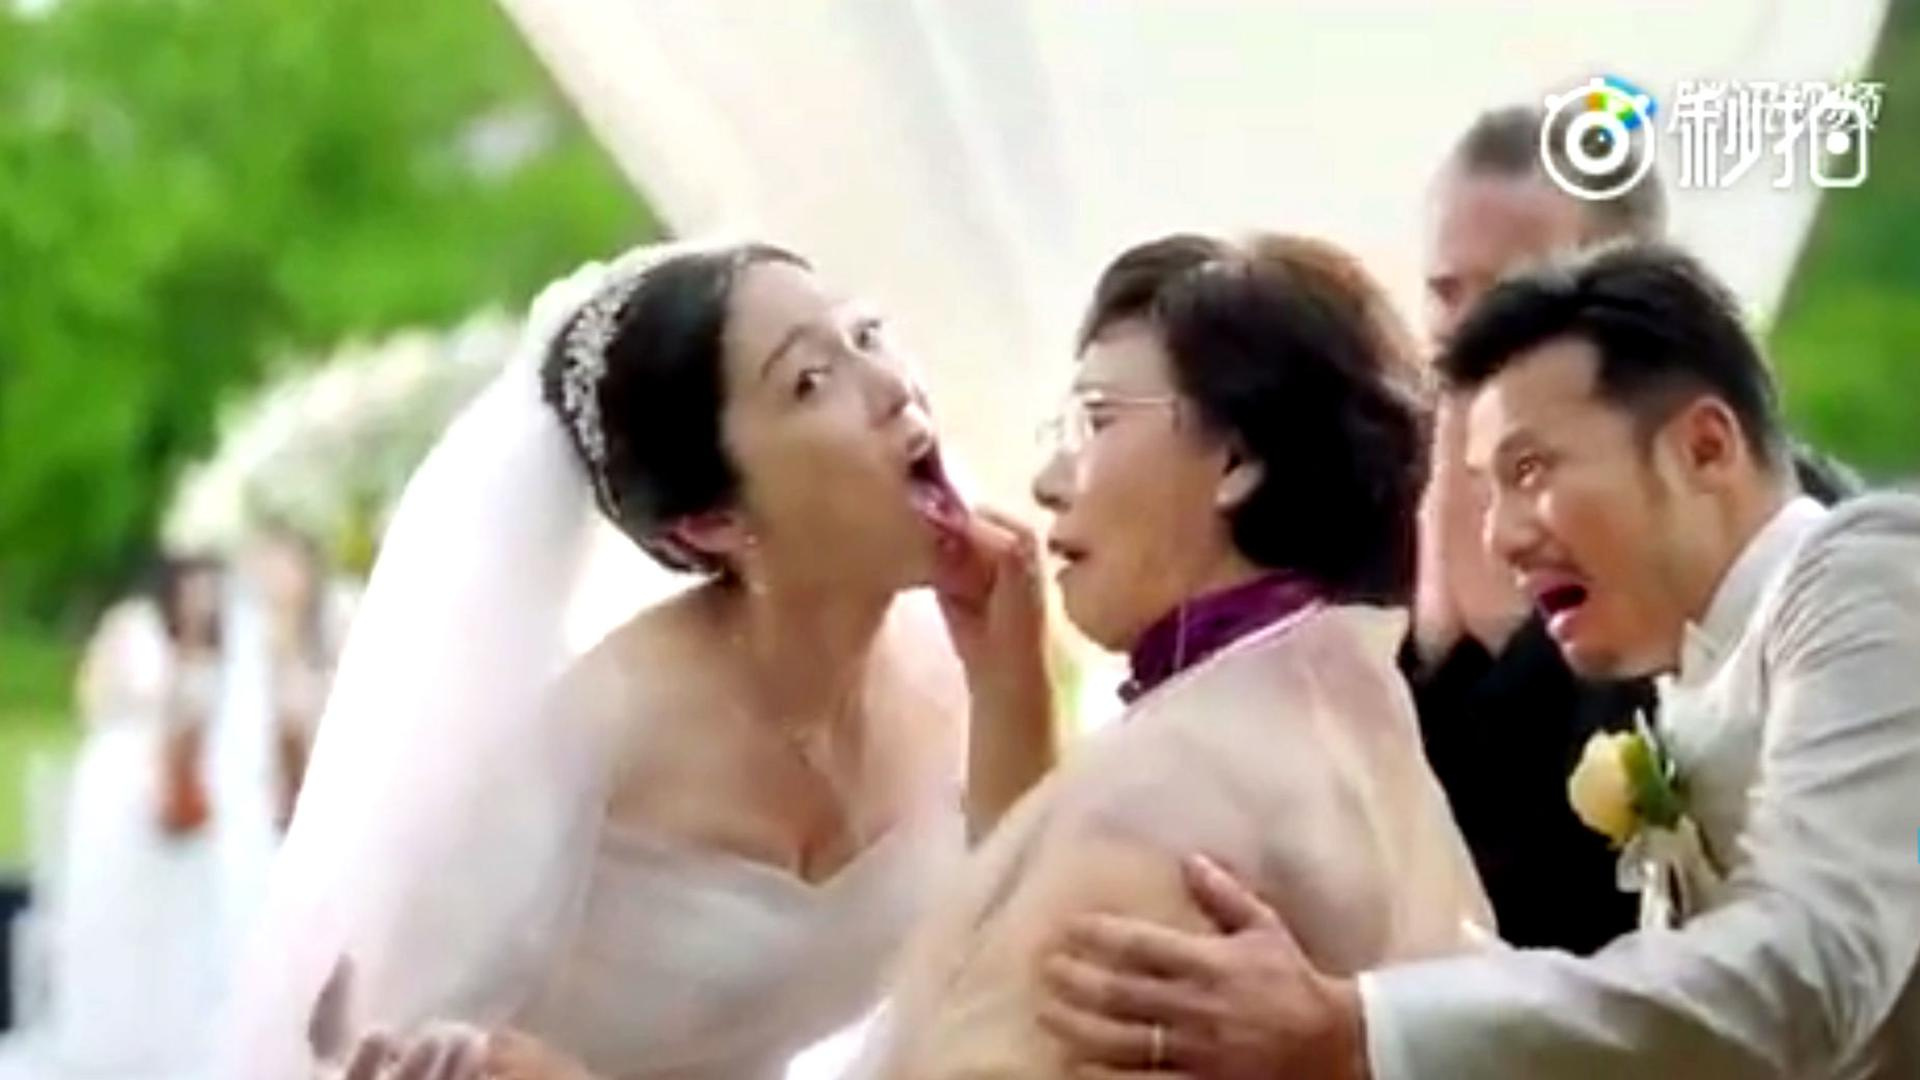 Chinese Audi Ad Causes Stir Compares New Wife To Used Car